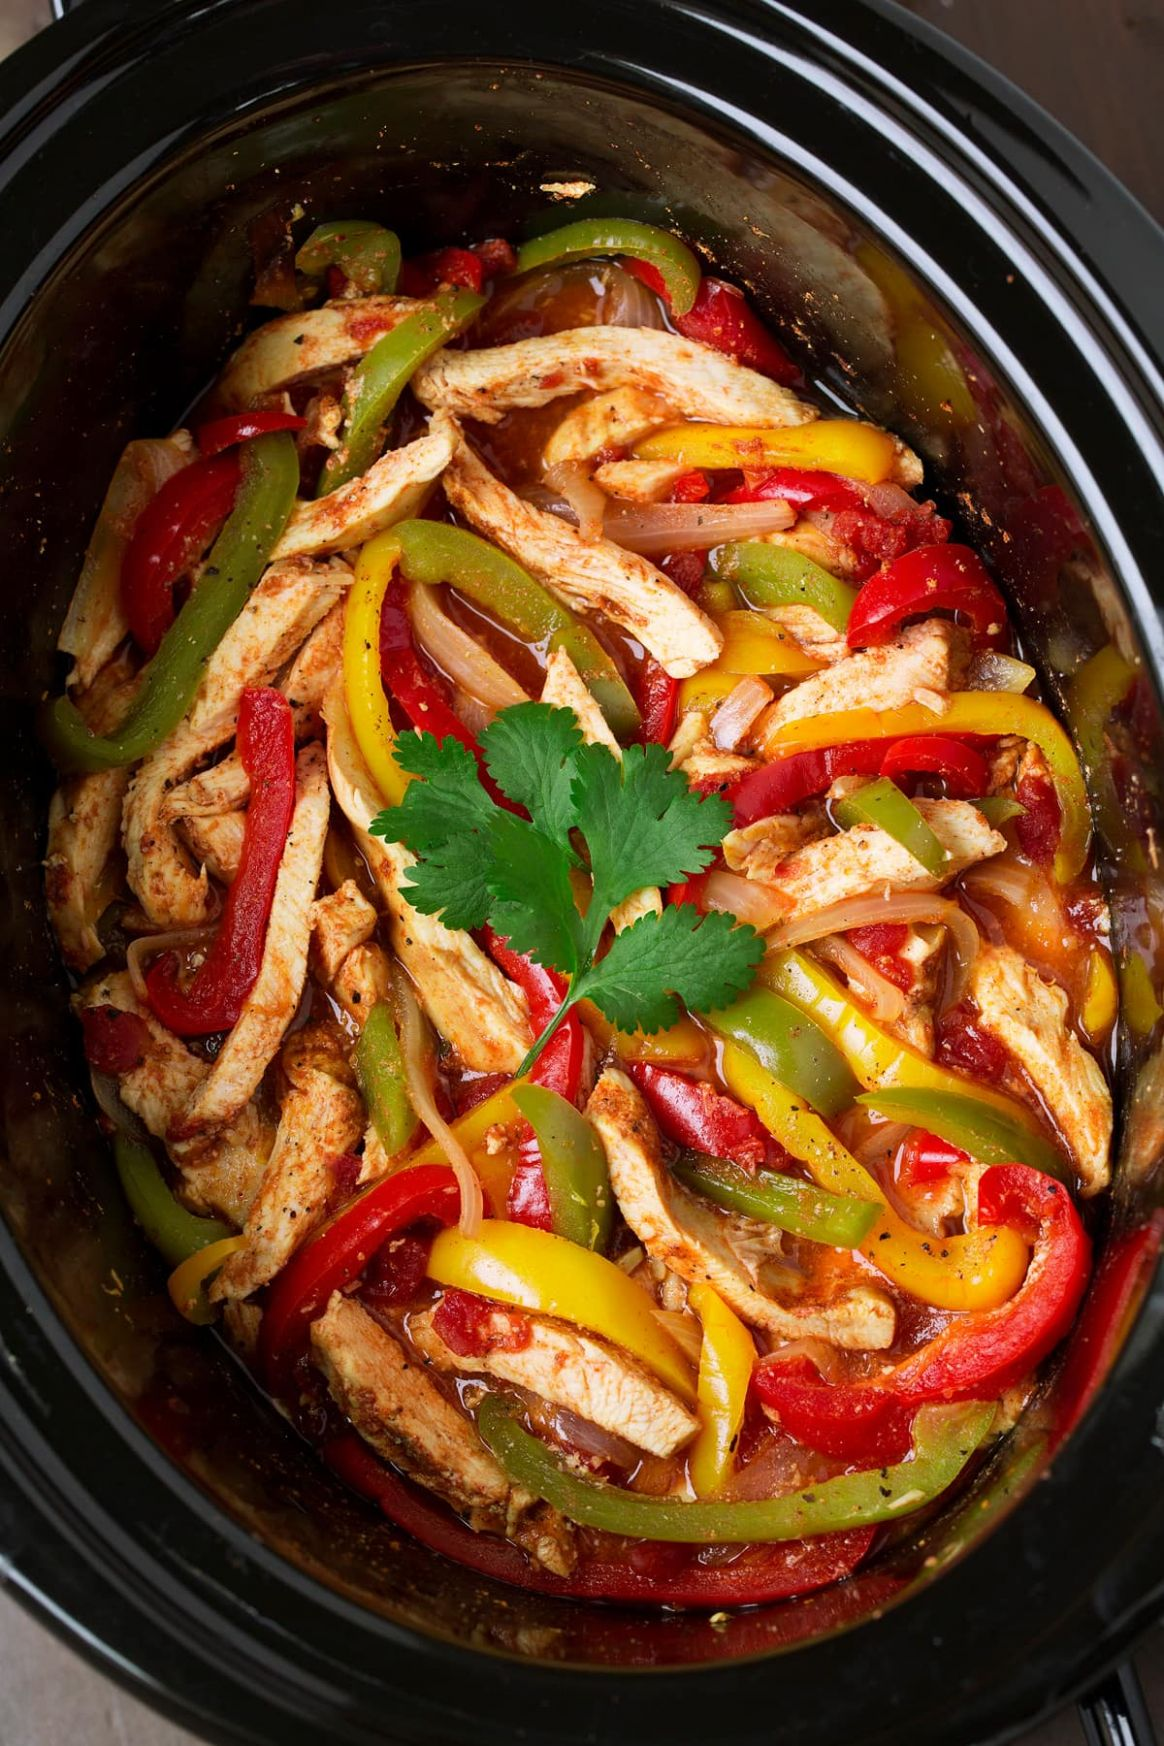 Slow Cooker Chicken Fajitas - Cooking Classy - Recipes Chicken Breast Bell Peppers Onions